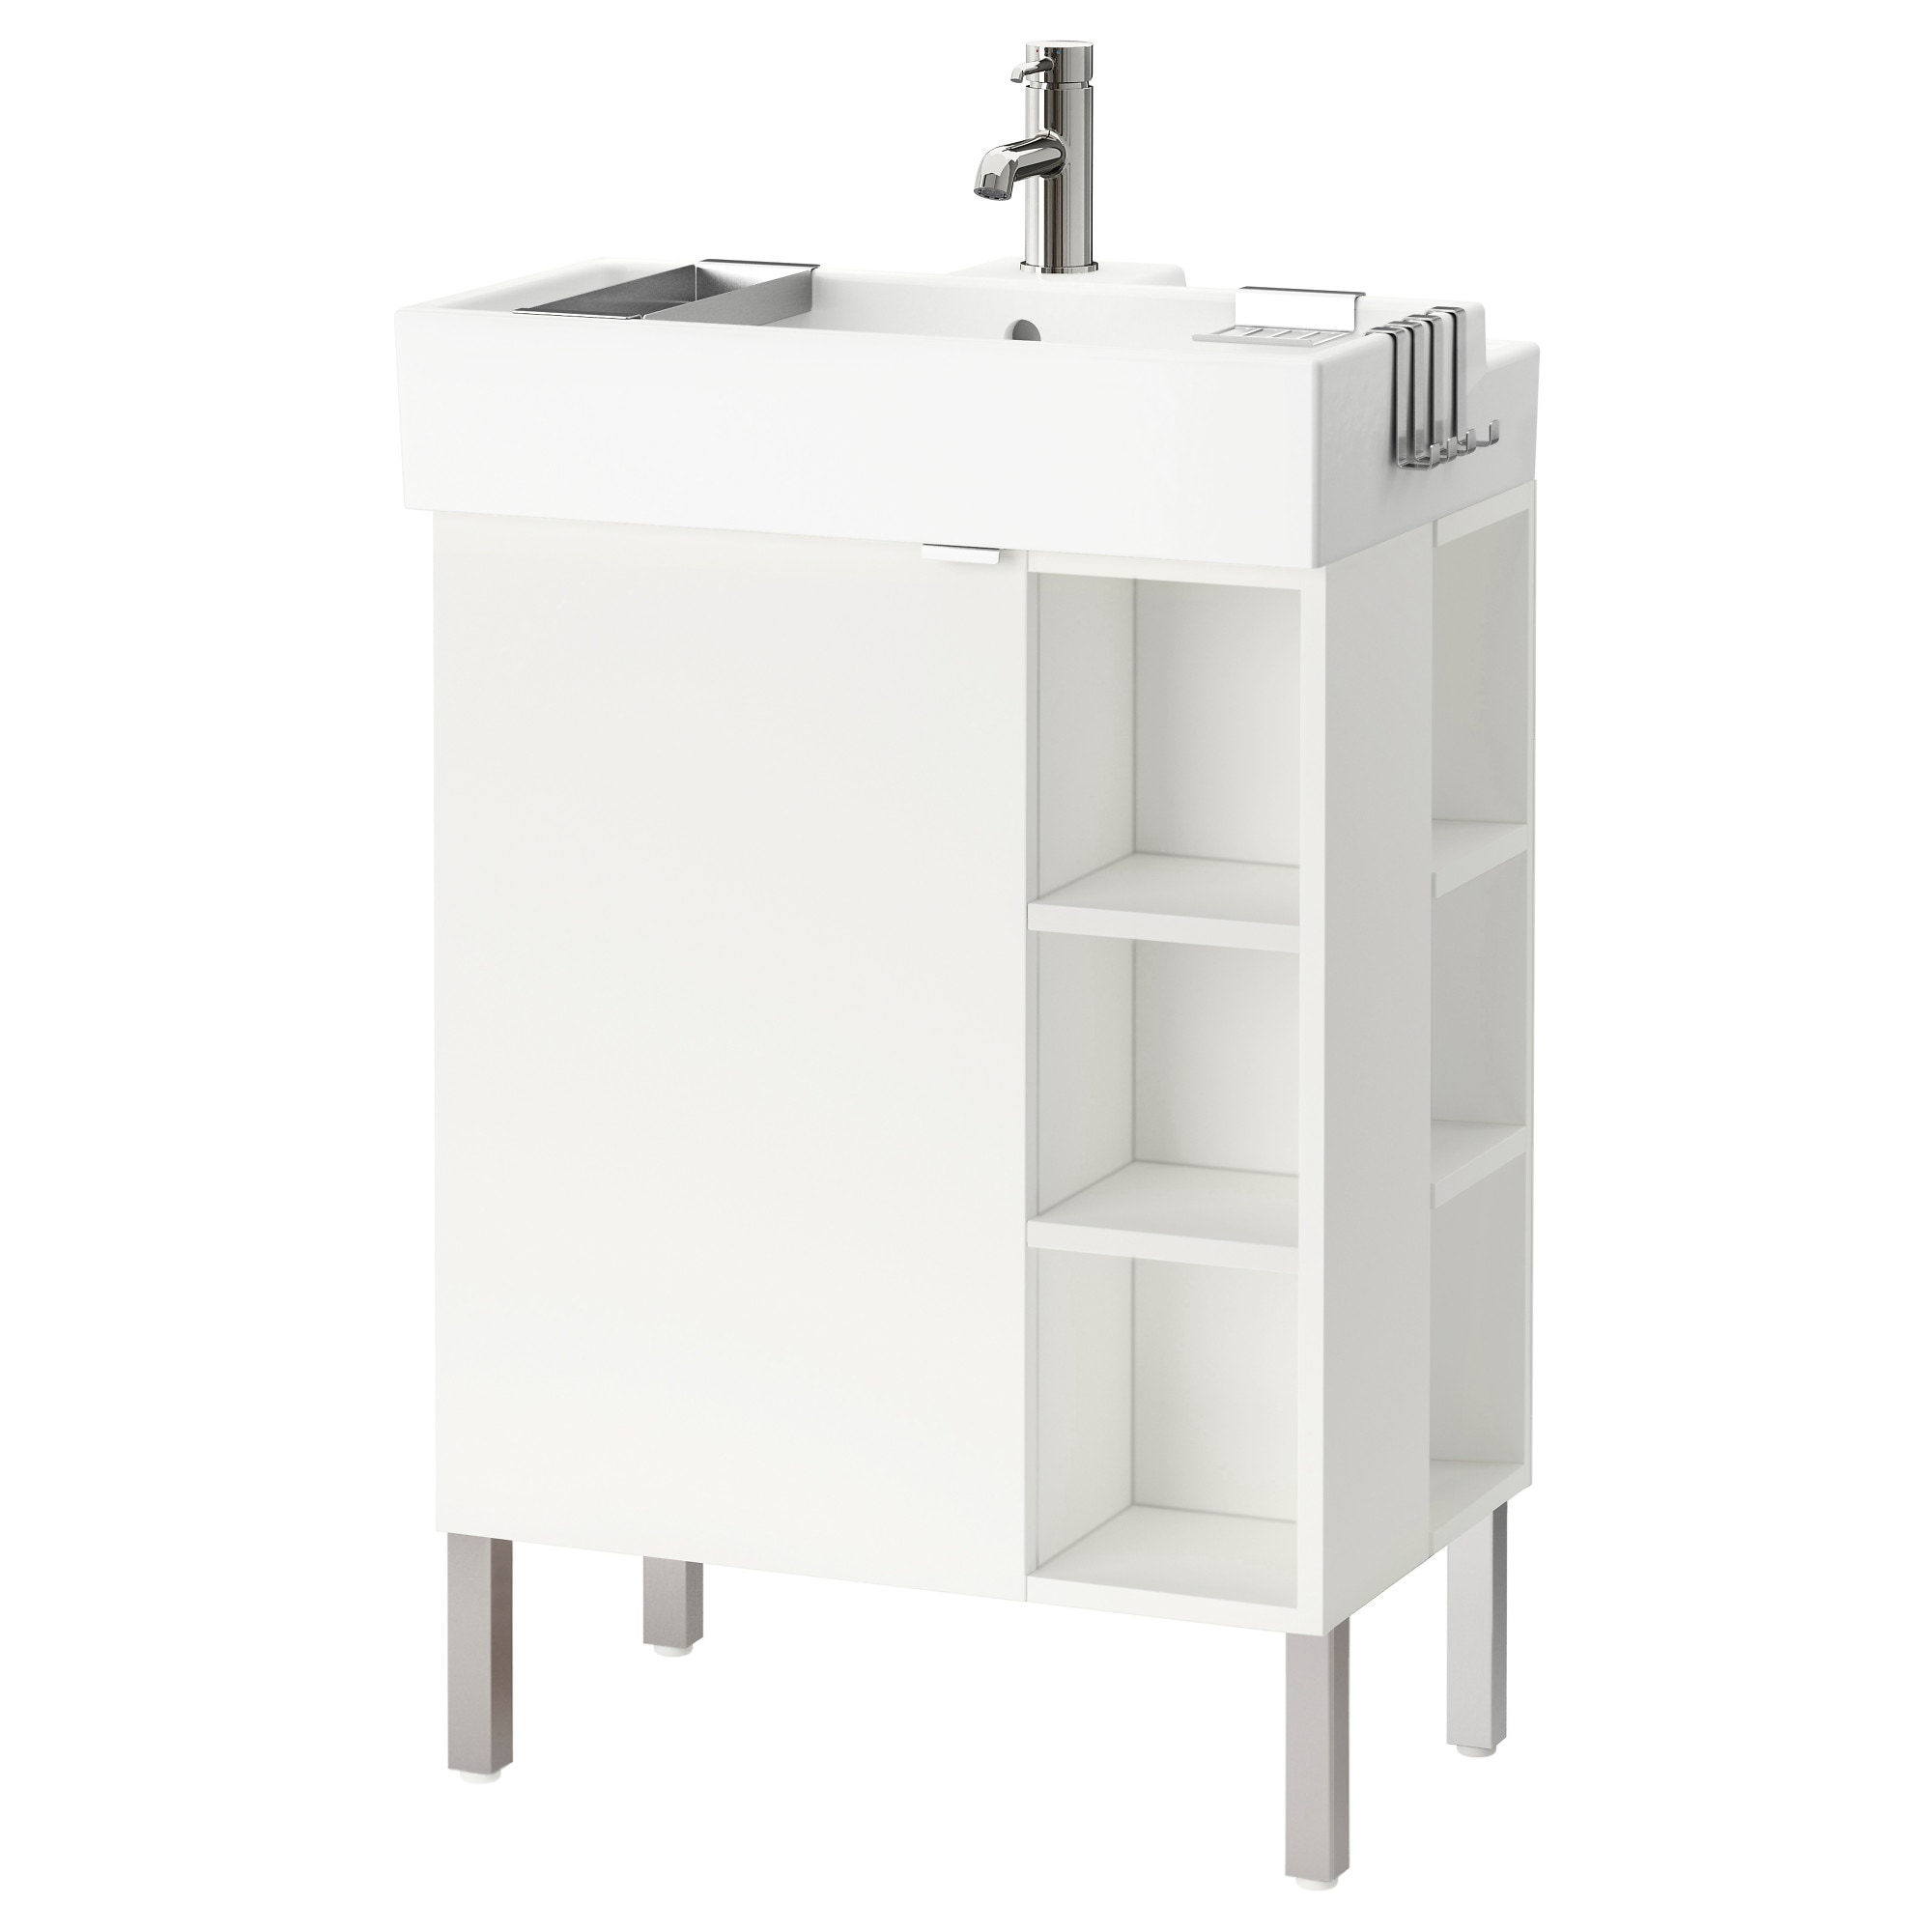 Lill Ngen Sink Cabinet 1 Door 2 End Units White Width 23 5